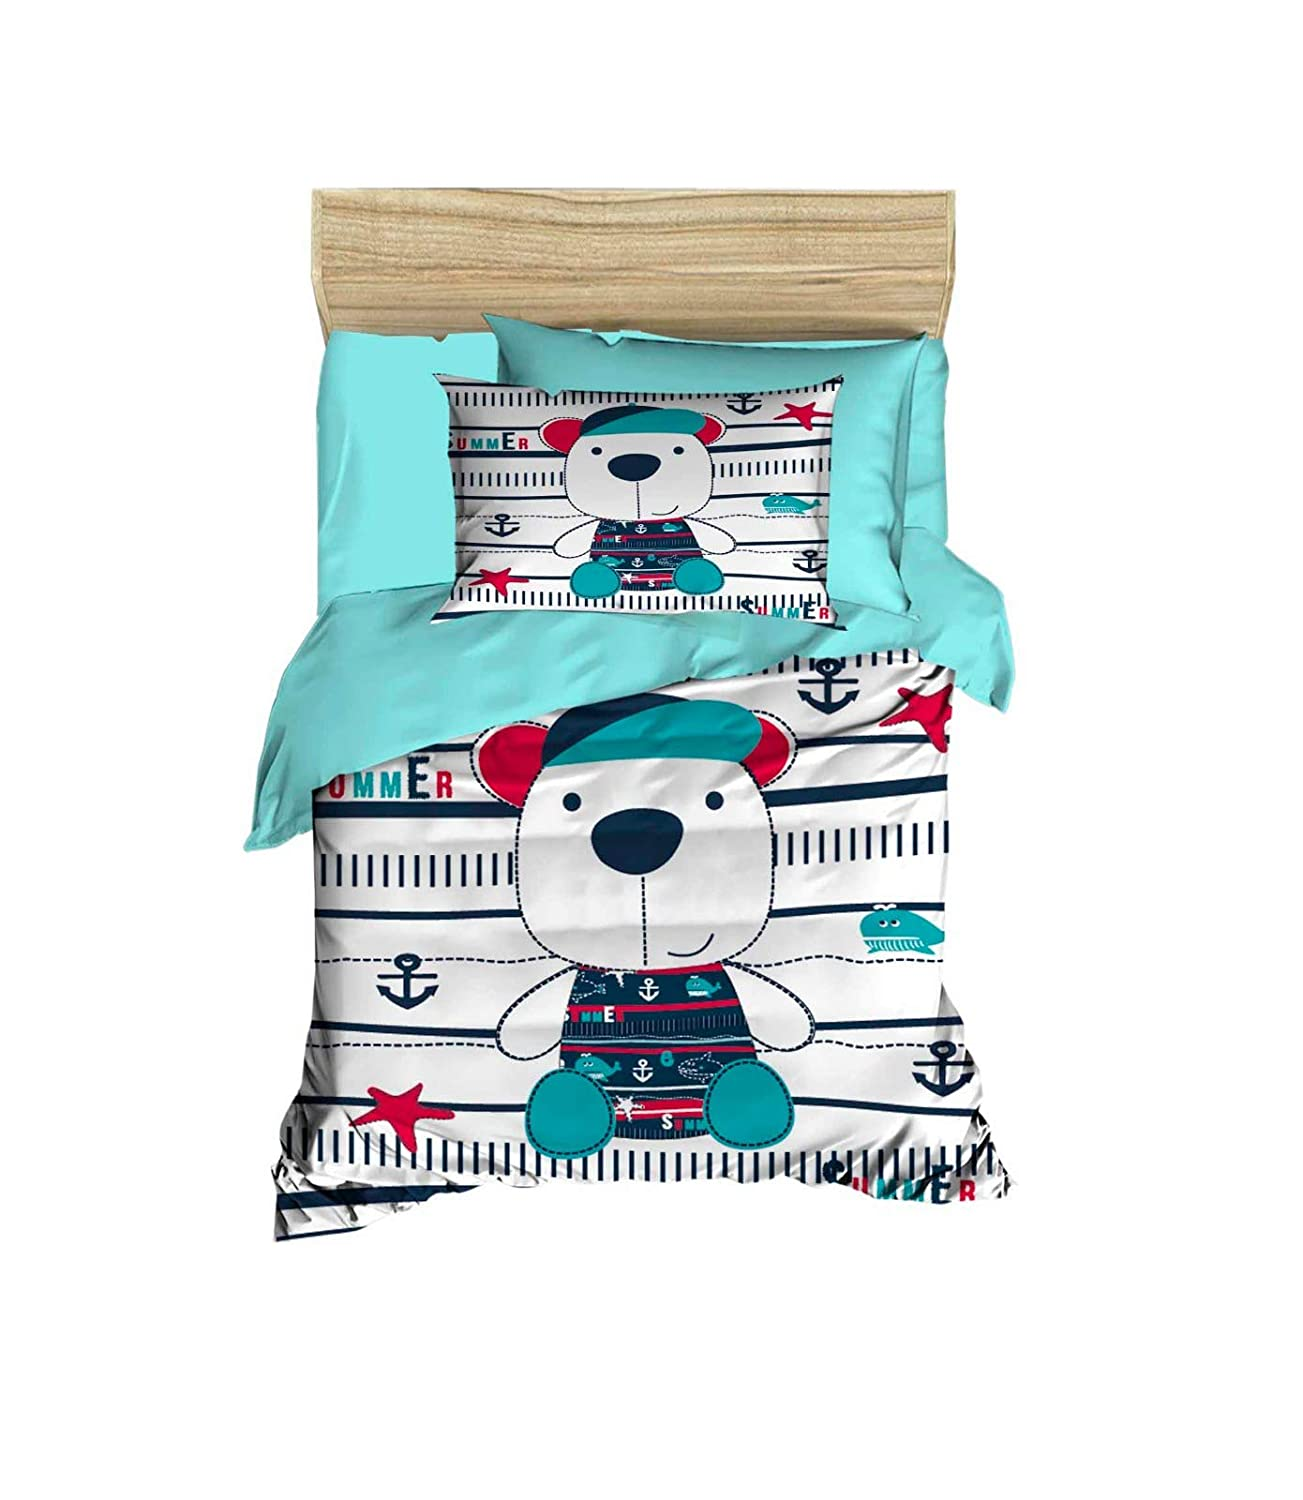 100% Cotton Nautical Baby Bedding Teddy Bear and Anchor Themed Nursery Baby Bett Set, Toddlers Crib Bedding for Baby Boys and Girls, Duvet Cover Satz with Comforter, 5 Pieces